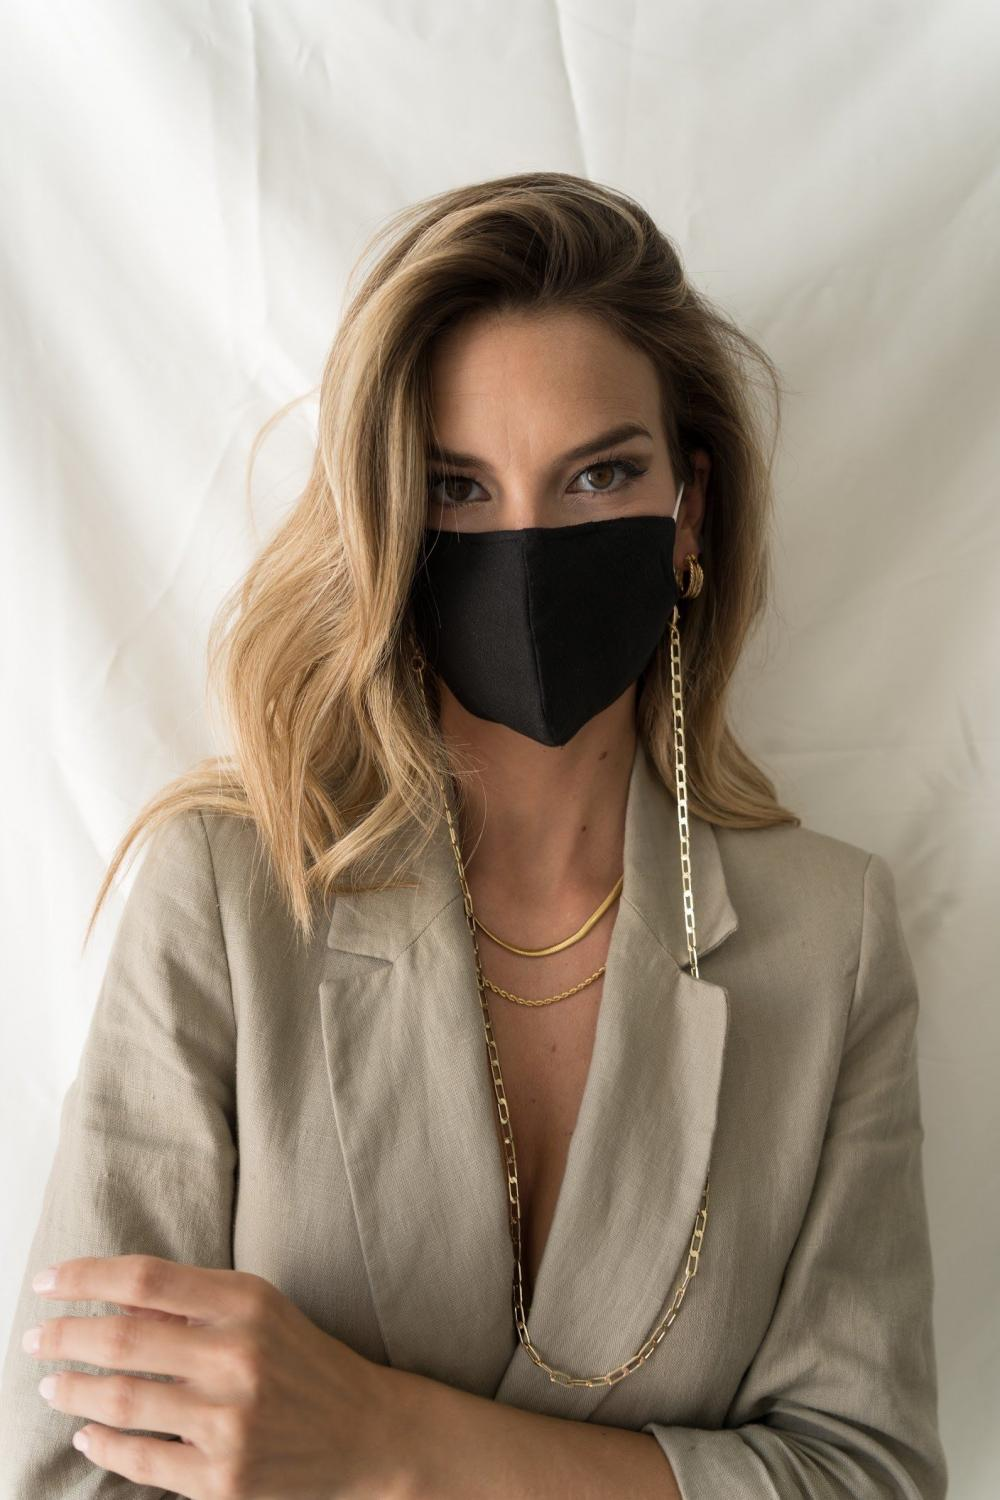 Classic black mask with chain as a fashion accessory